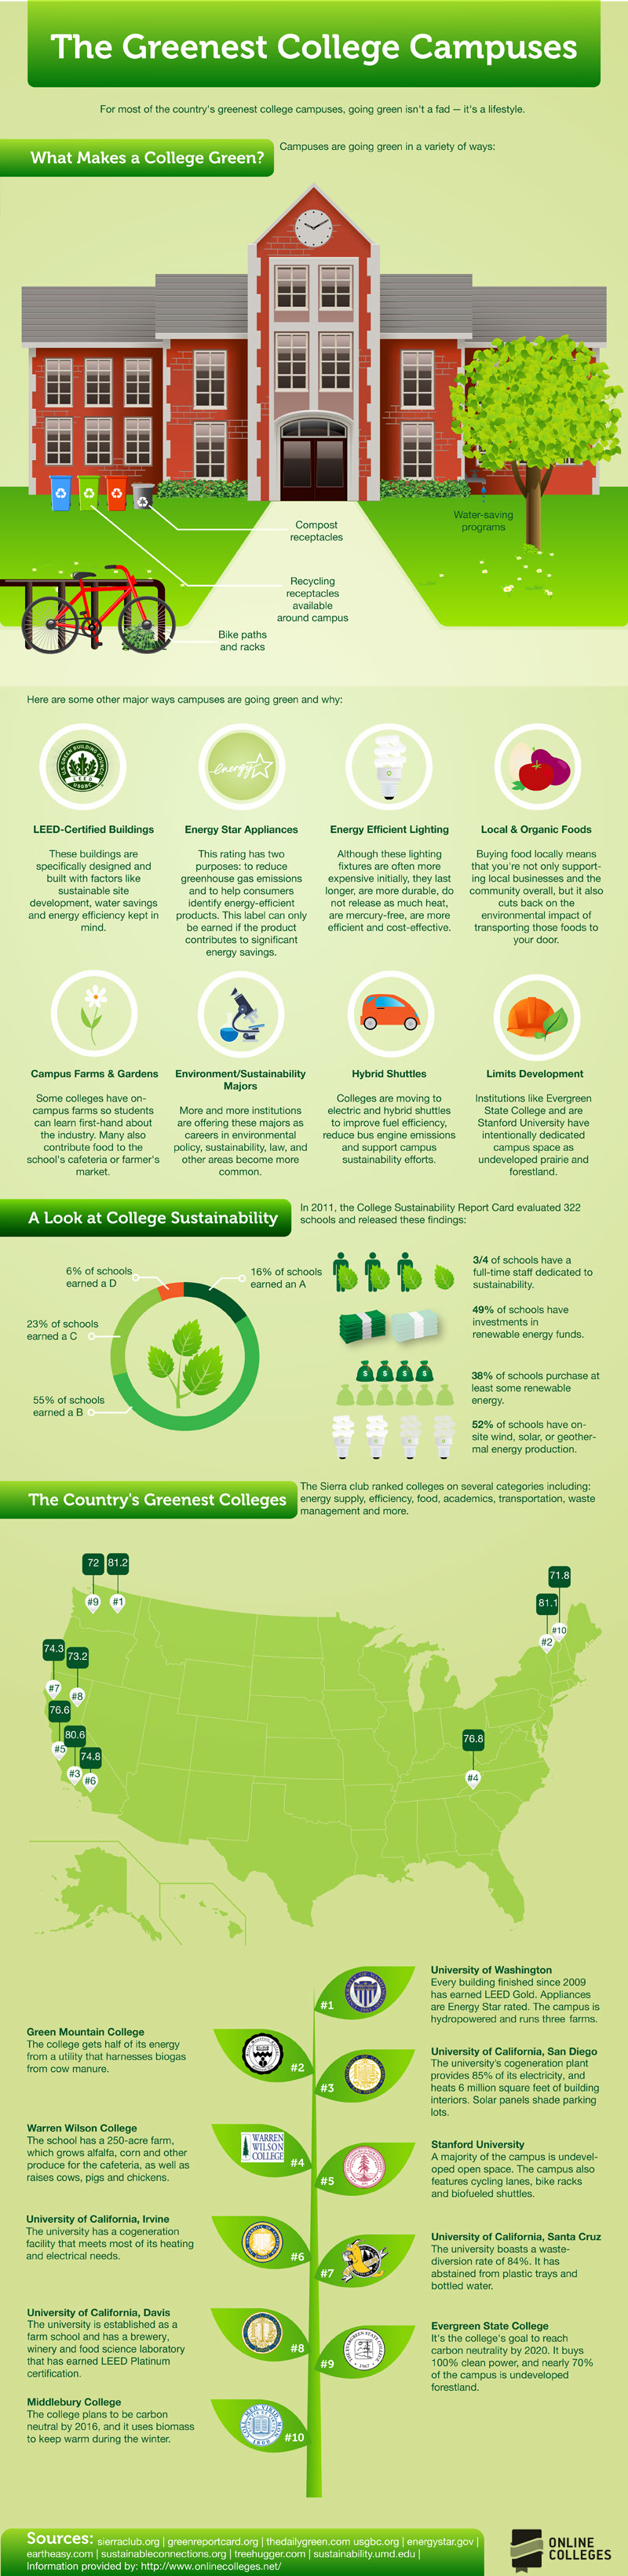 The-Greenest-College-Campuses-infographic